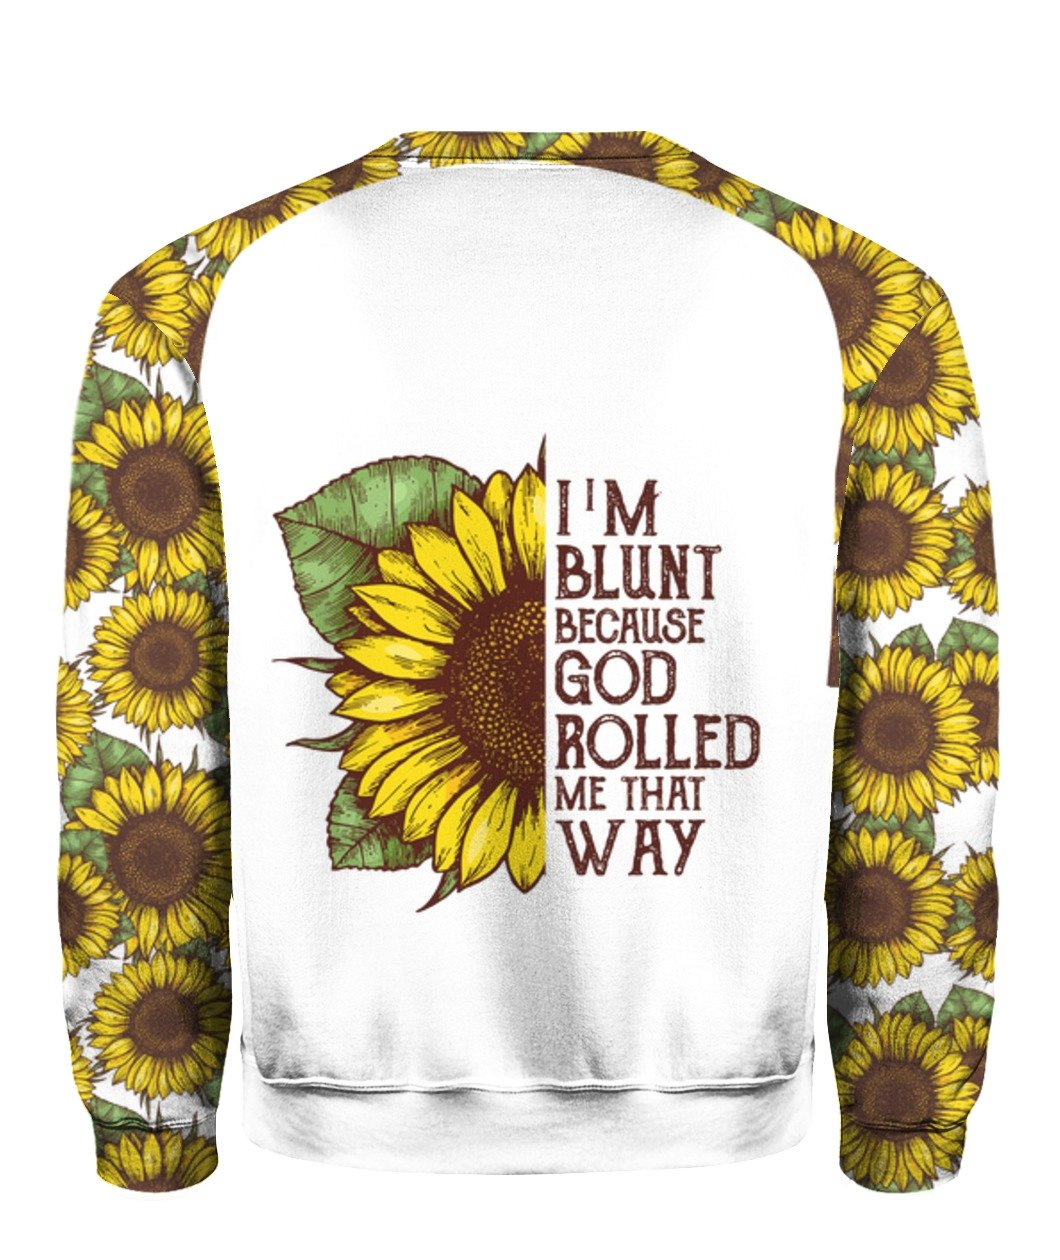 I'm blunt because god rolled me that way sunflower all over print sweatshirt 1